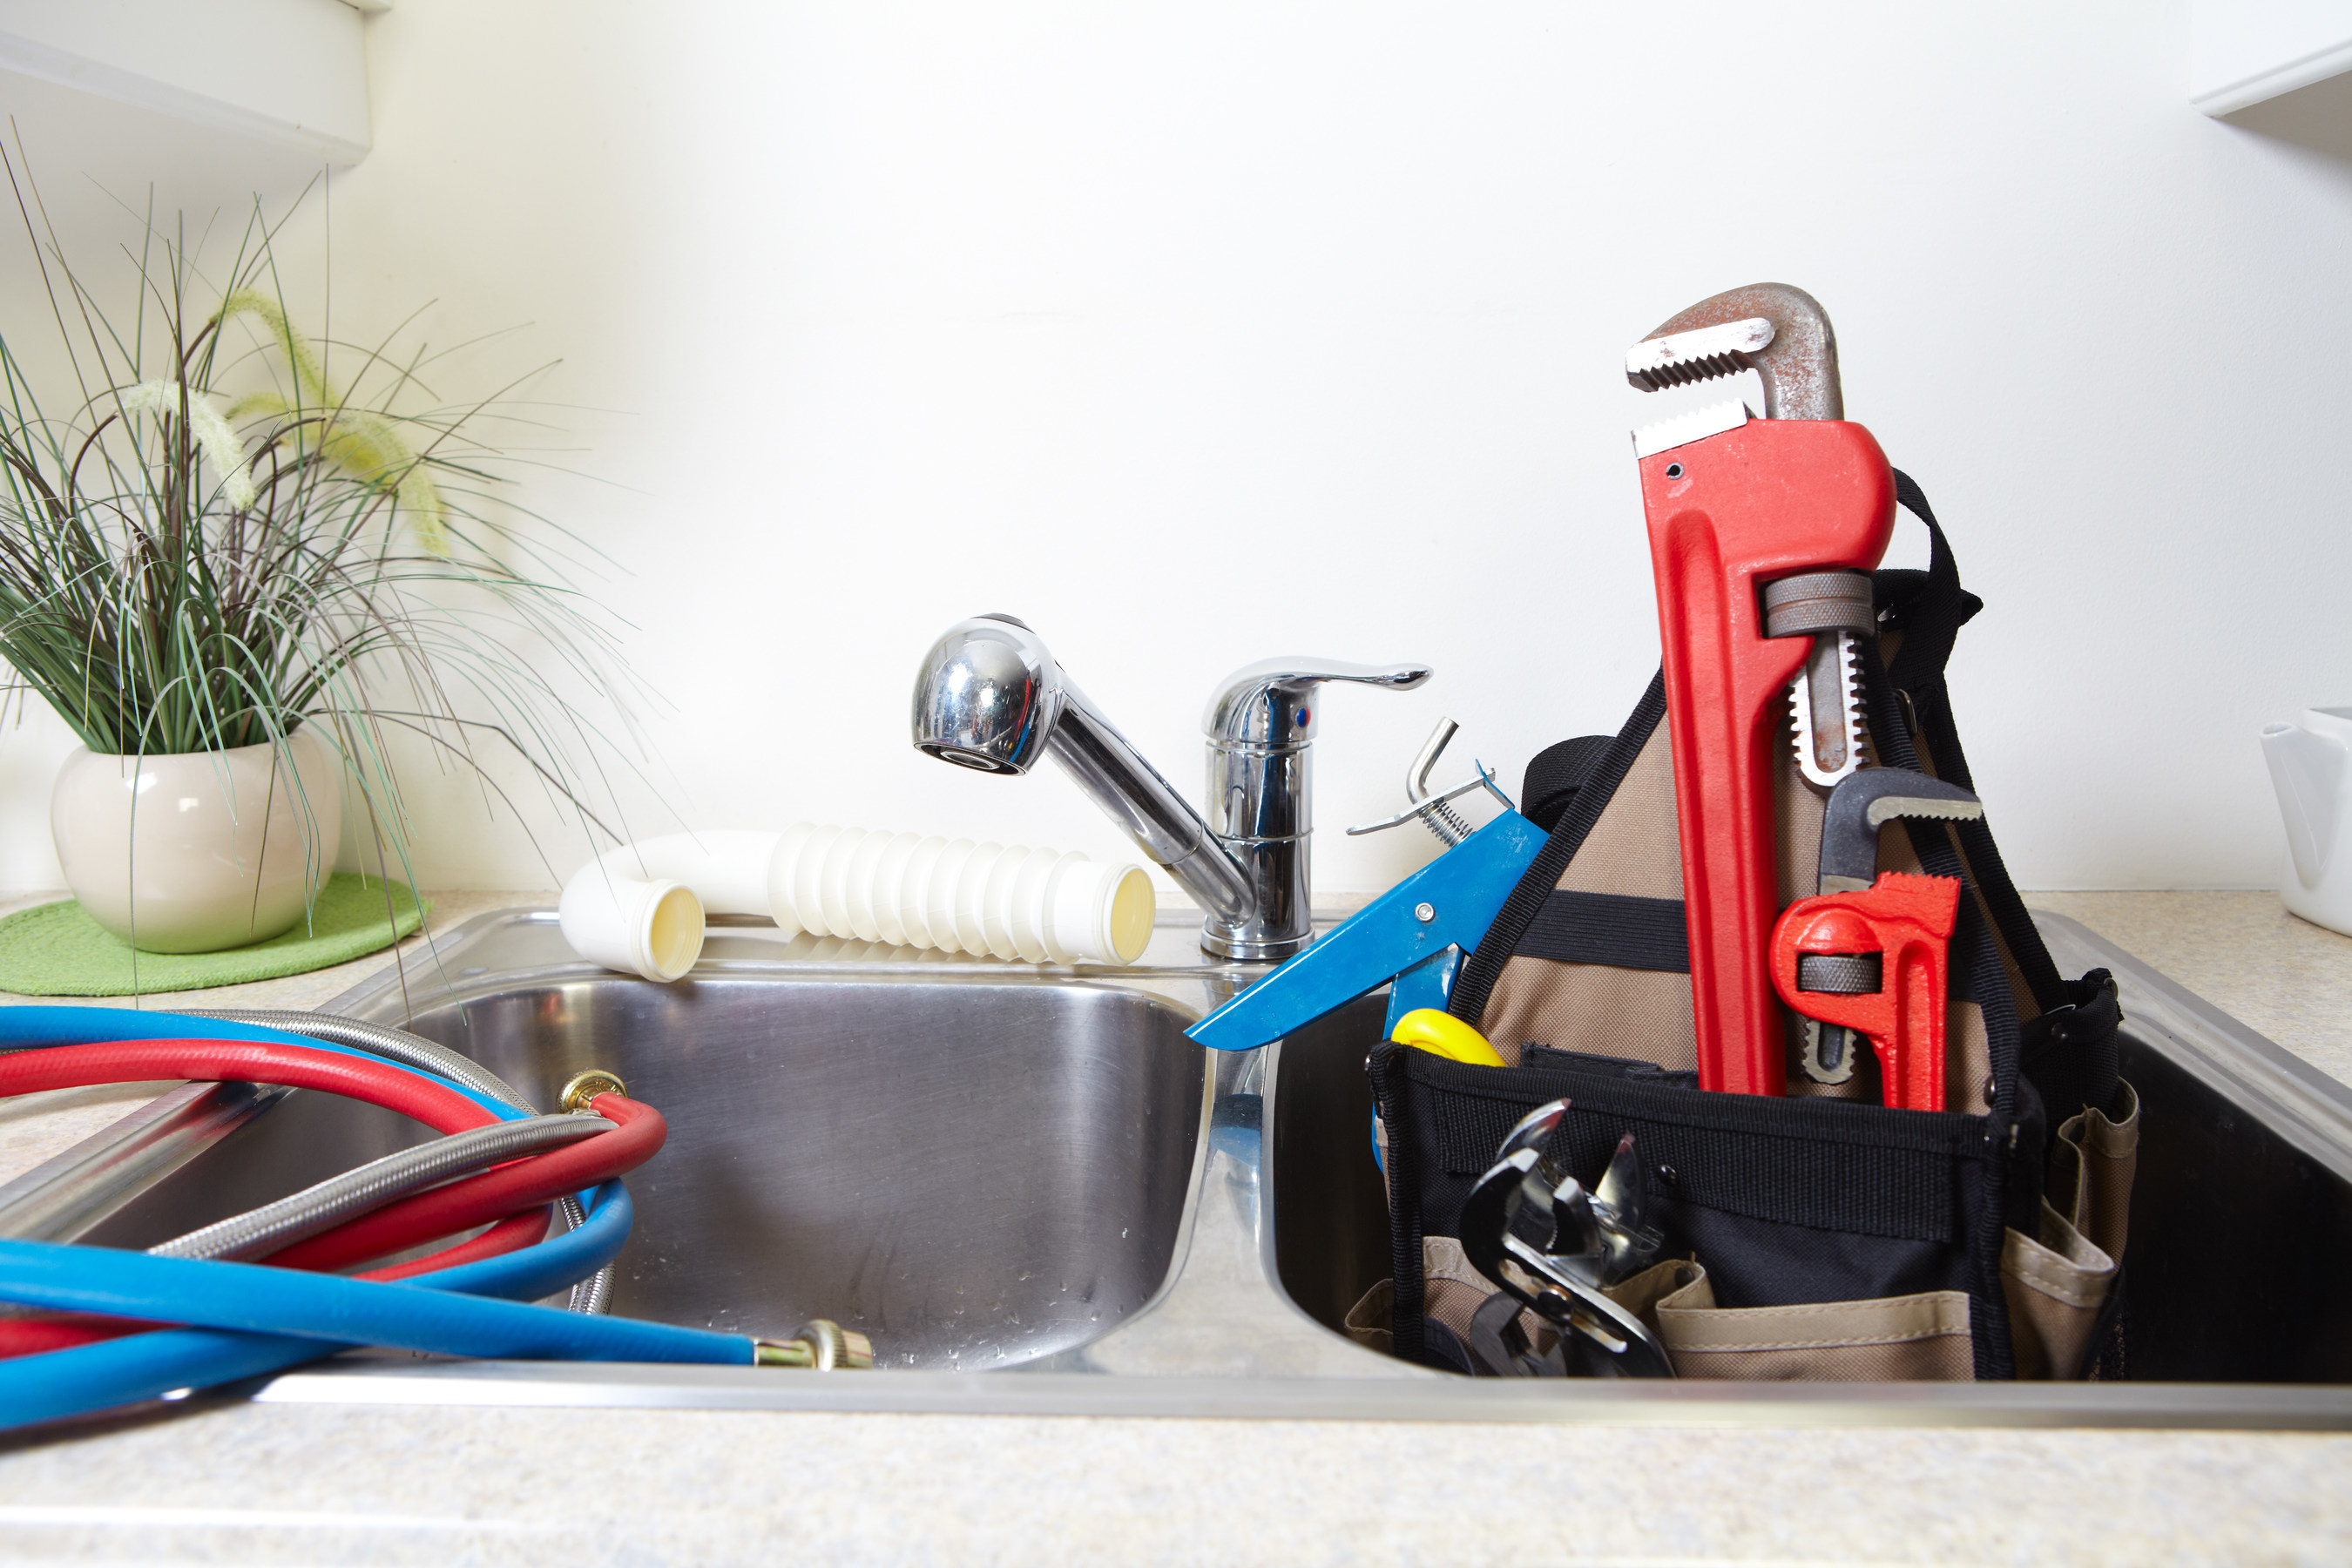 As spring weather arrives in the northeast, Petri Plumbing offers plumbing tips to homeowners to avoid unnecessary repairs.